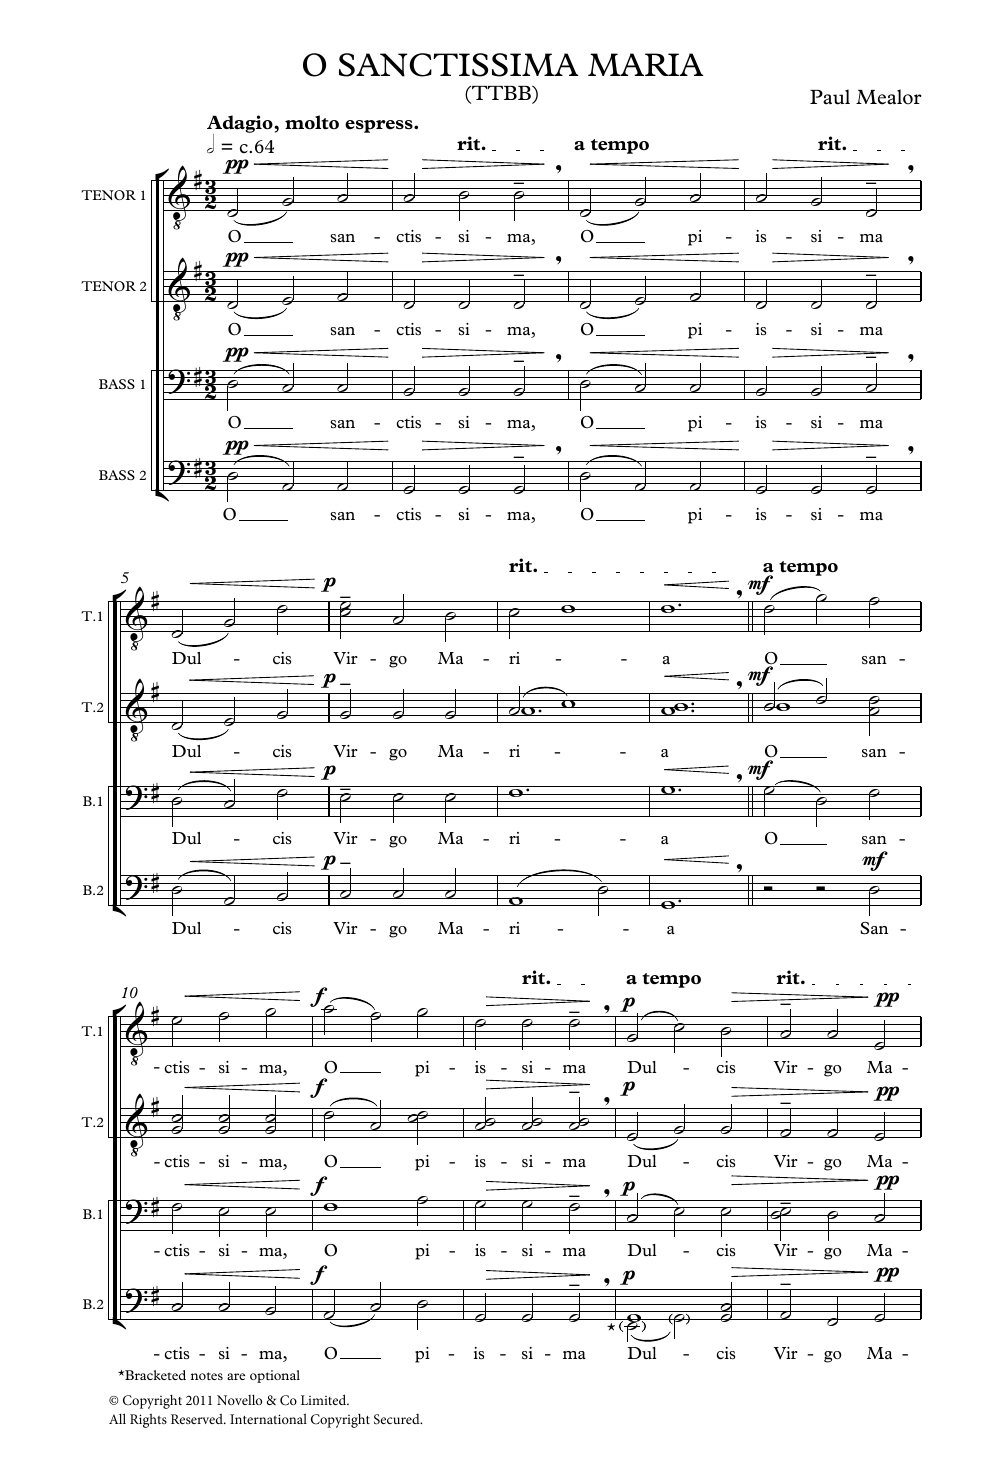 Paul Mealor O Sanctissima Maria sheet music notes and chords. Download Printable PDF.